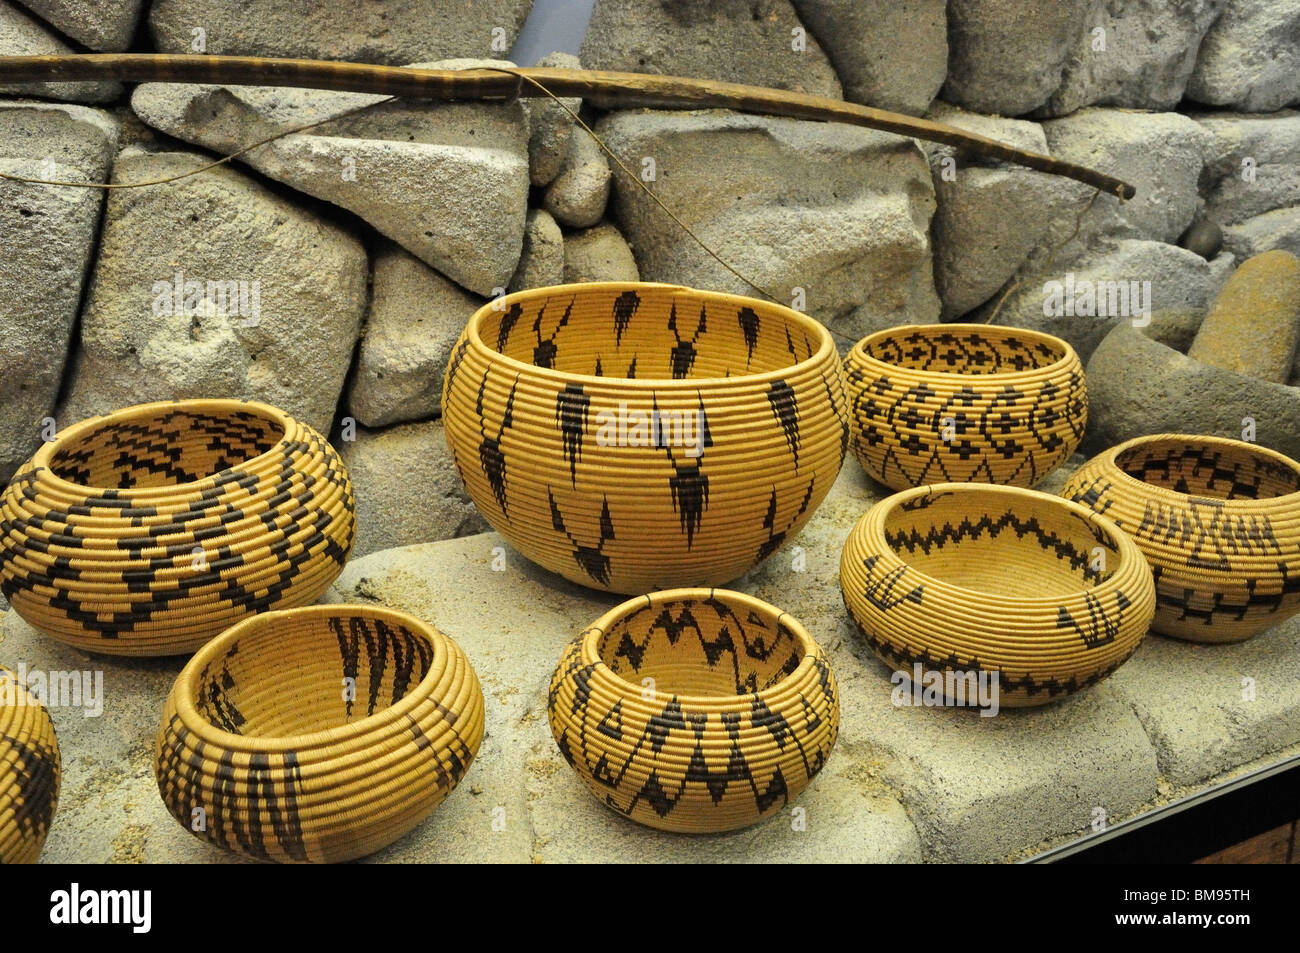 Native American baskets displayed at the Emigrant Trail Museum in Donner Memorial State Park, California - Stock Image